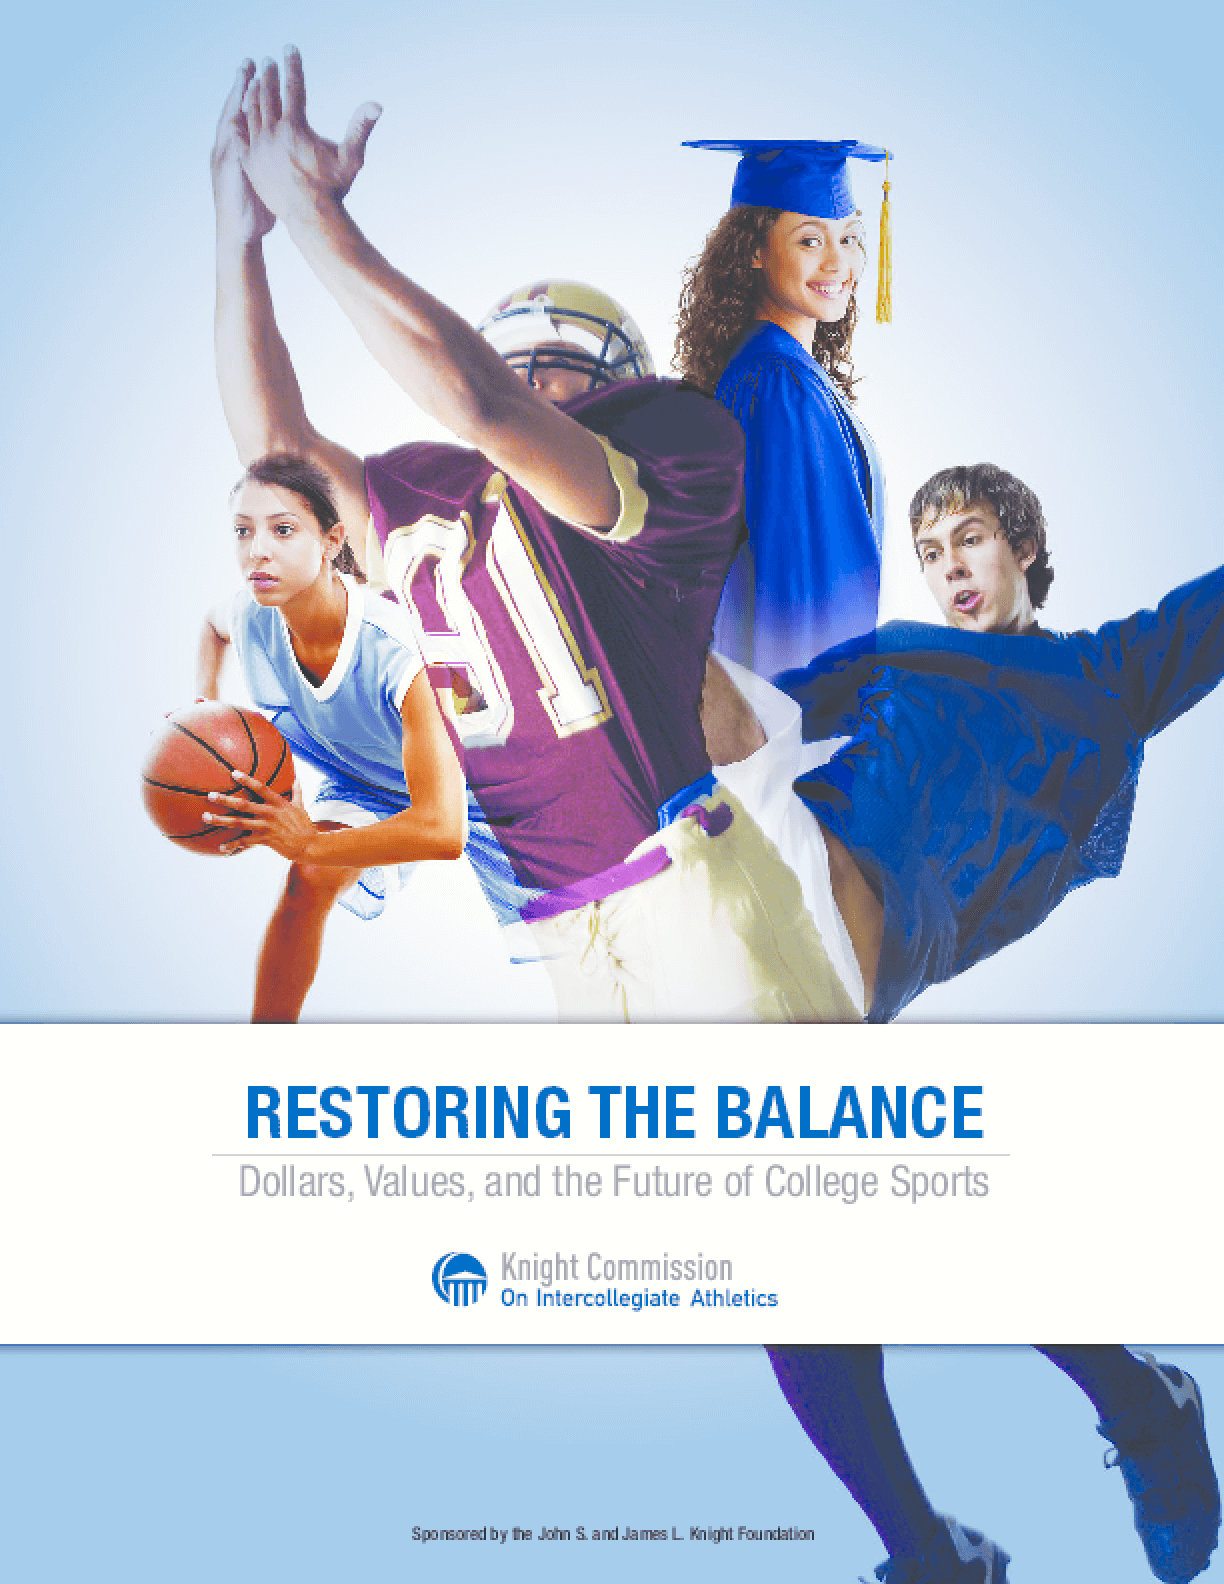 Restoring the Balance: Dollars, Values, and the Future of College Sports